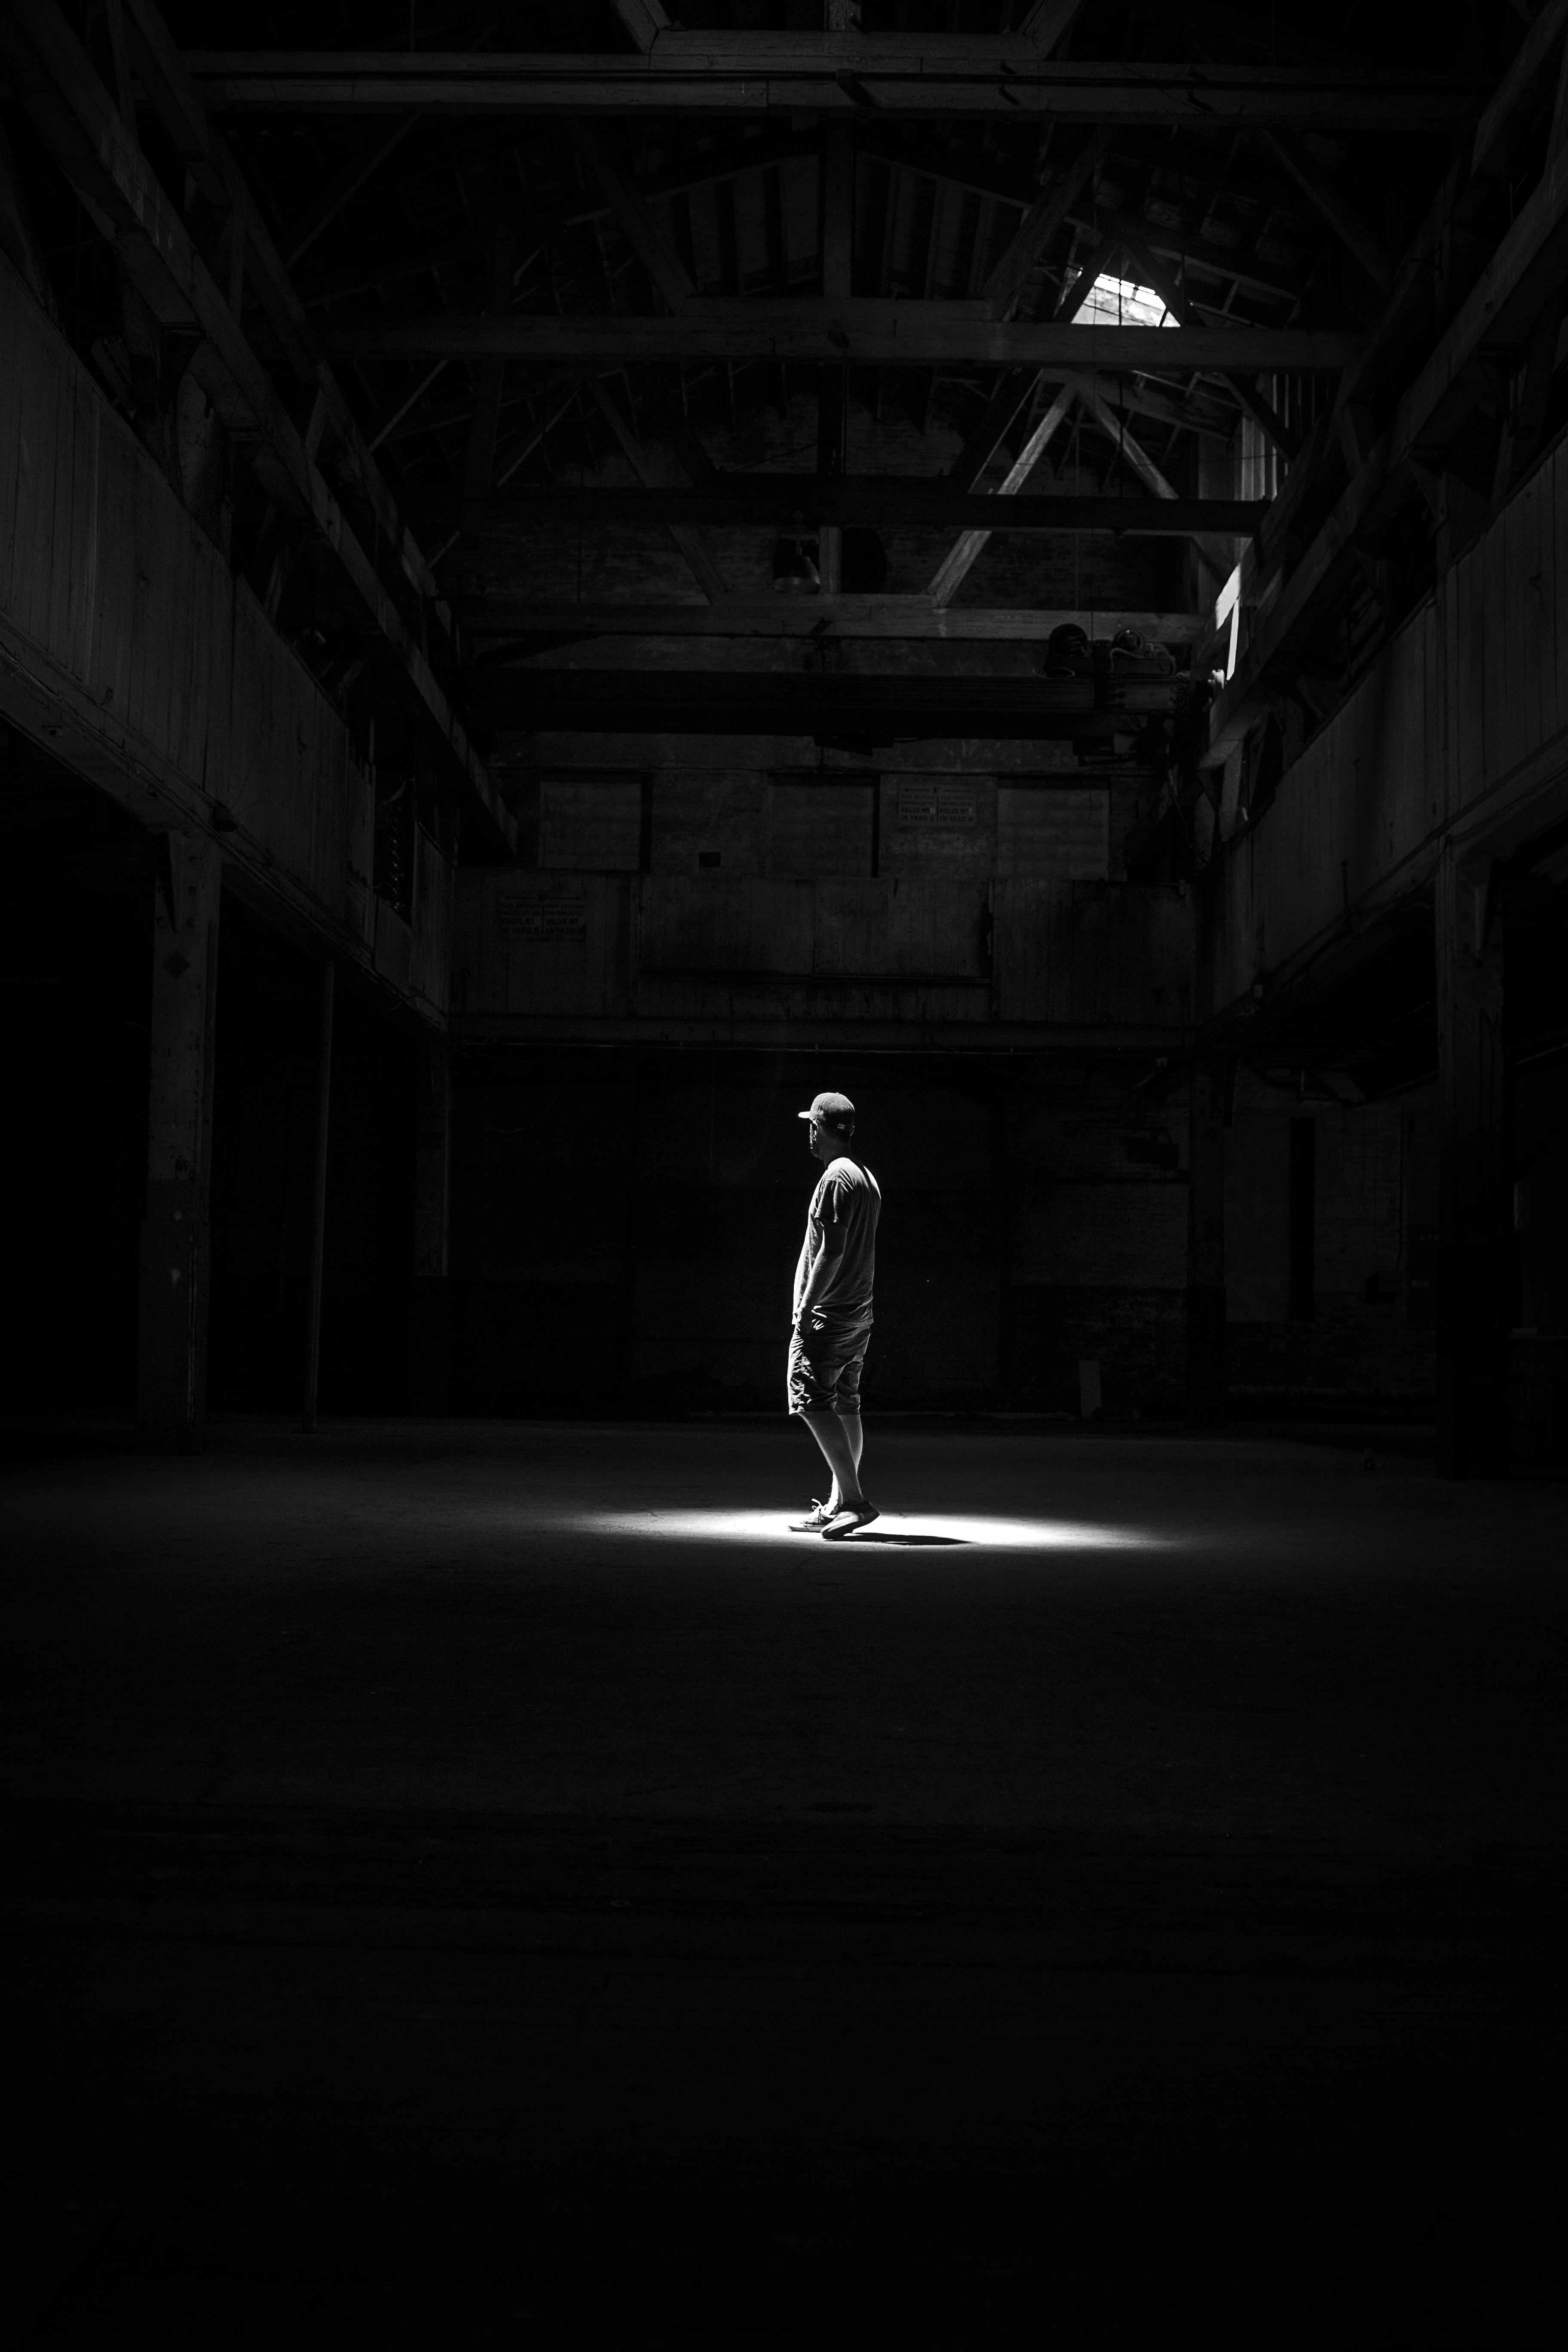 A dark black and white photo of a man standing in a building in Red Hook, Brooklyn, New York